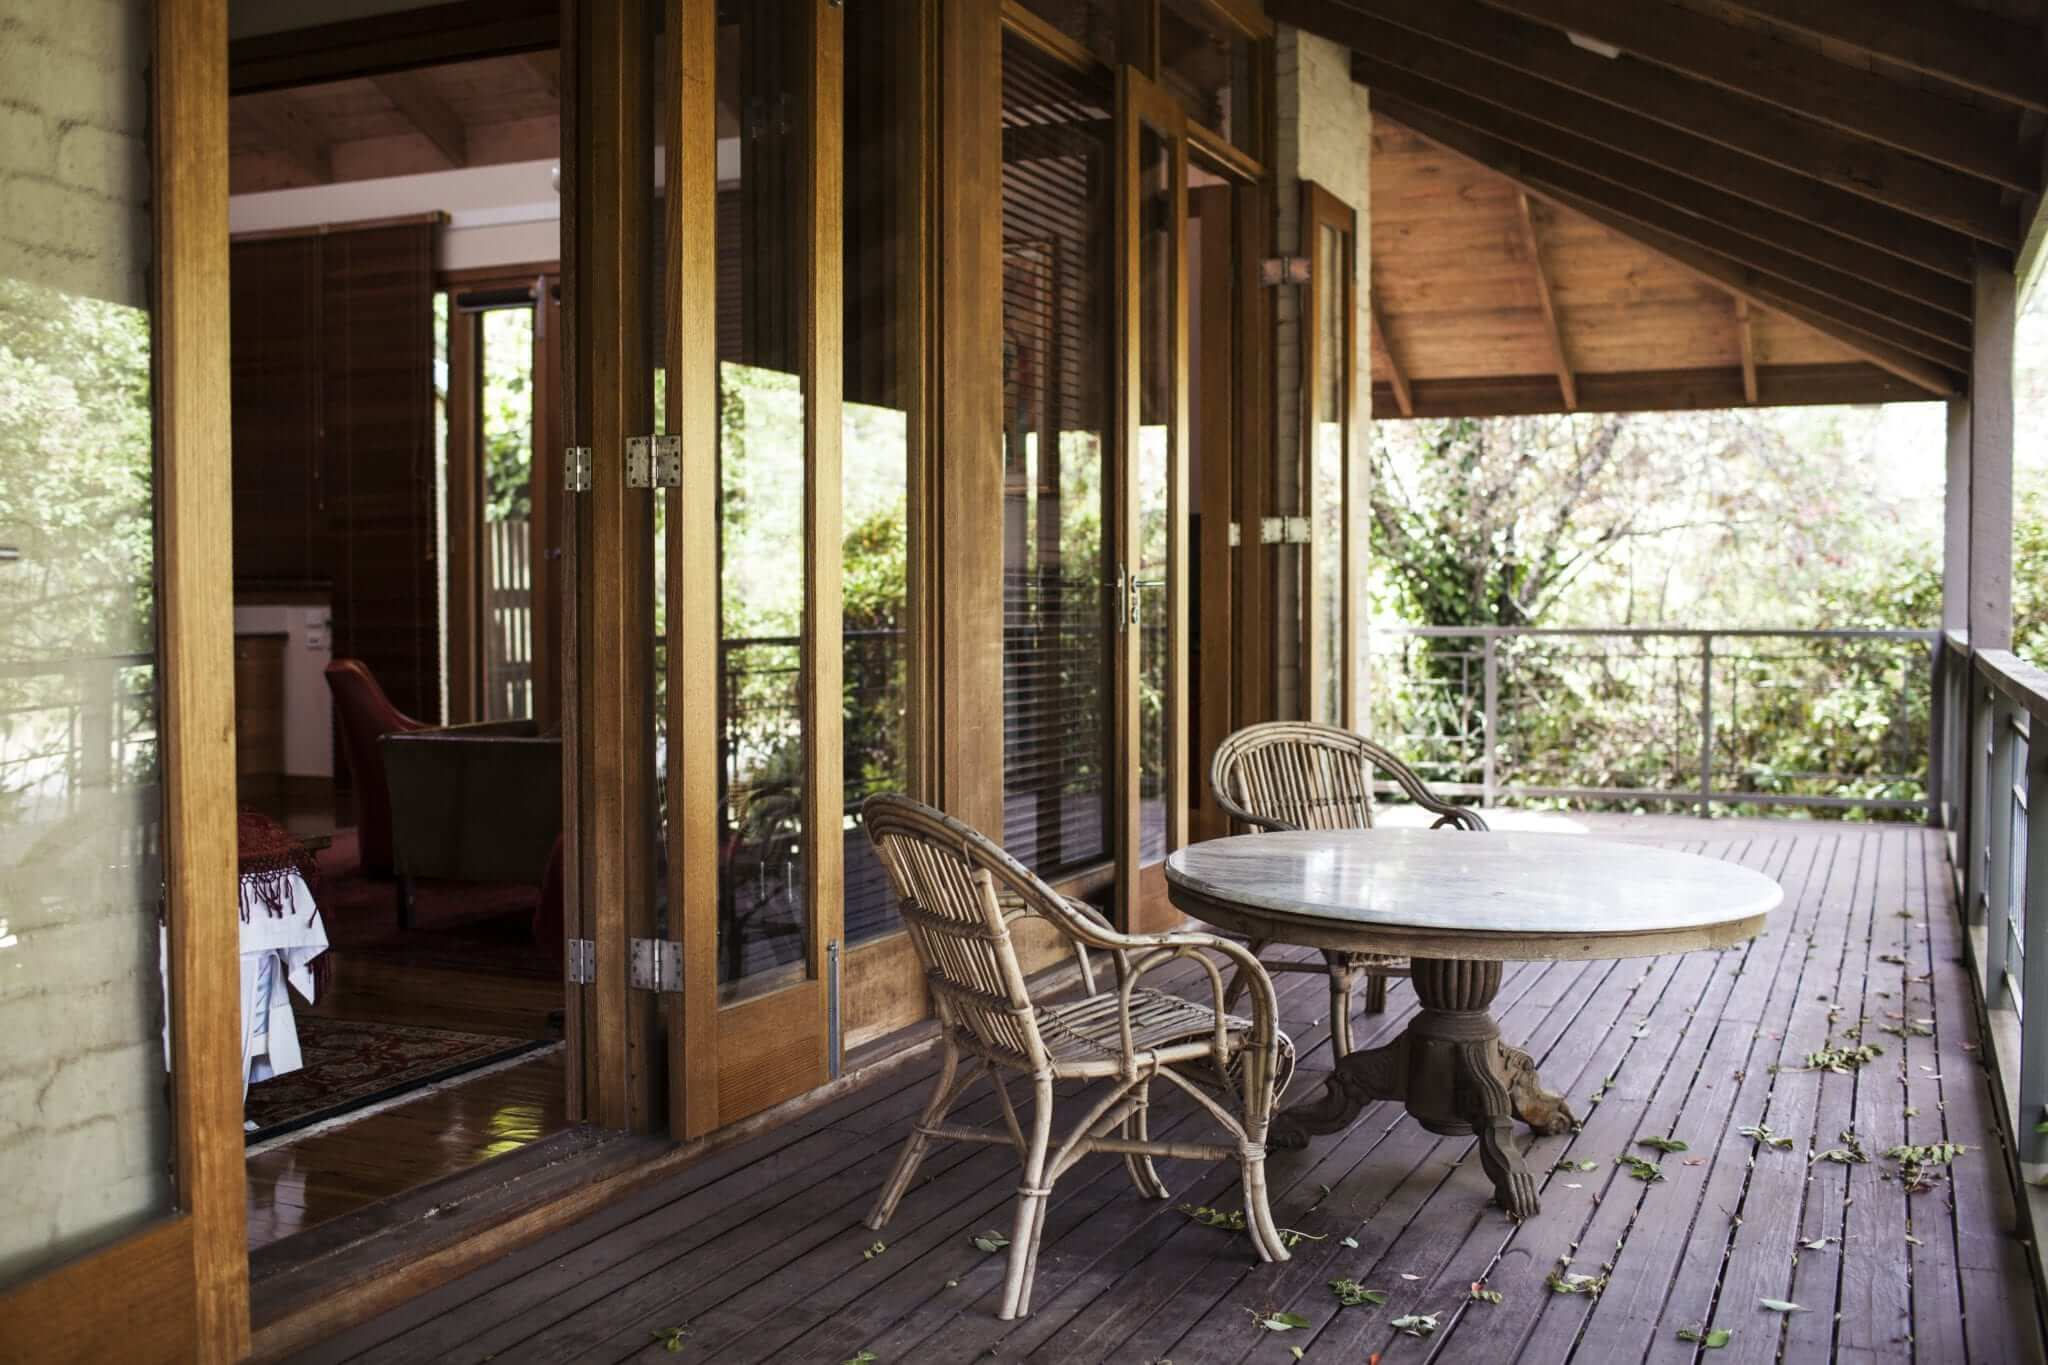 Outdoor relaxation on the deck at Kate's Place, Daylesford